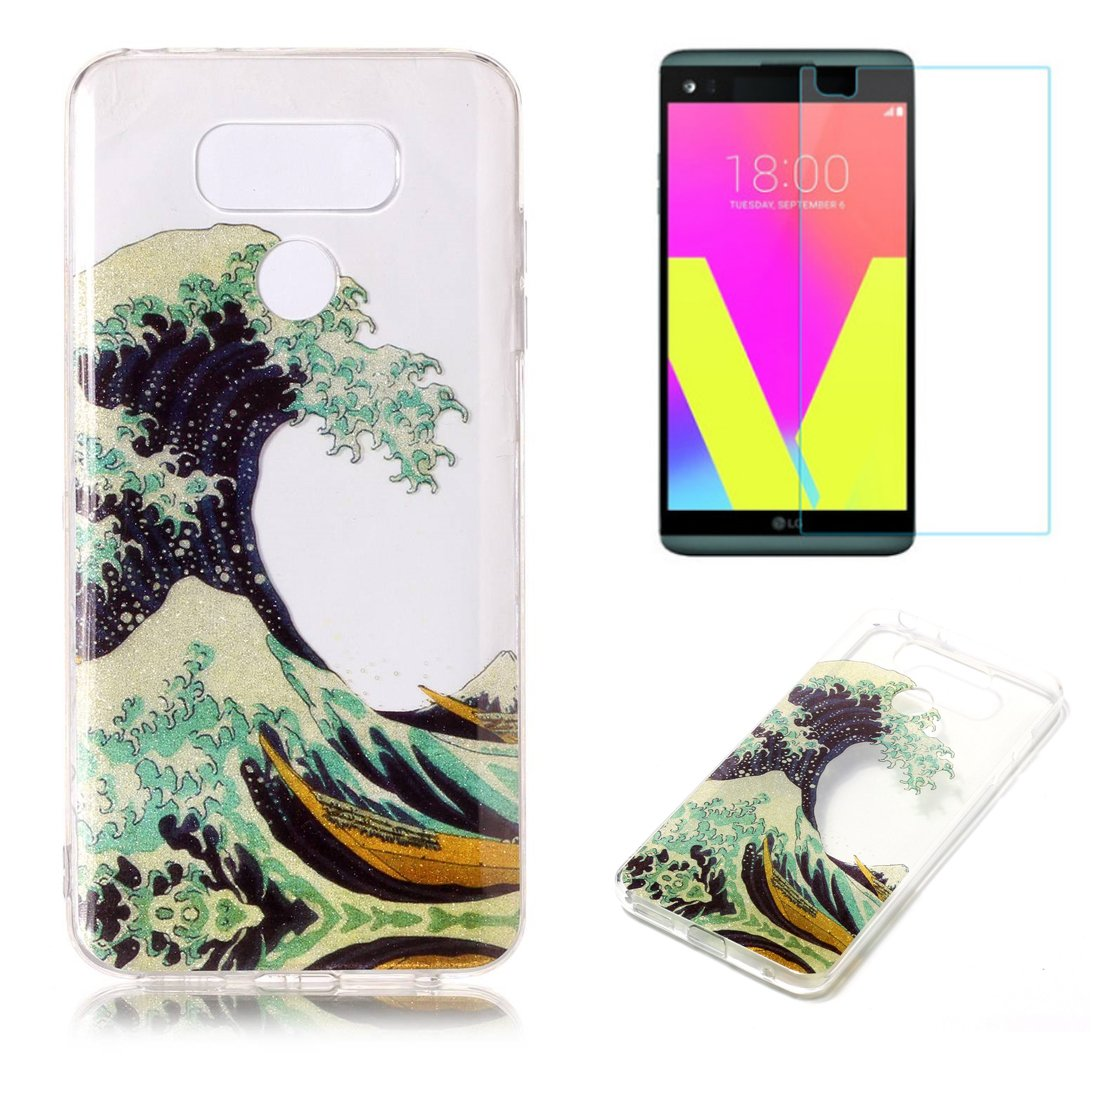 For LG G6 Case with Pattern Purple Pineapple, OYIME Glitter Bling Design Ultra Thin Slim Fit Protective Back Cover Soft Silicone Rubber Shell Drop Protection Anti-Scratch Transparent Bumper and Screen Protector